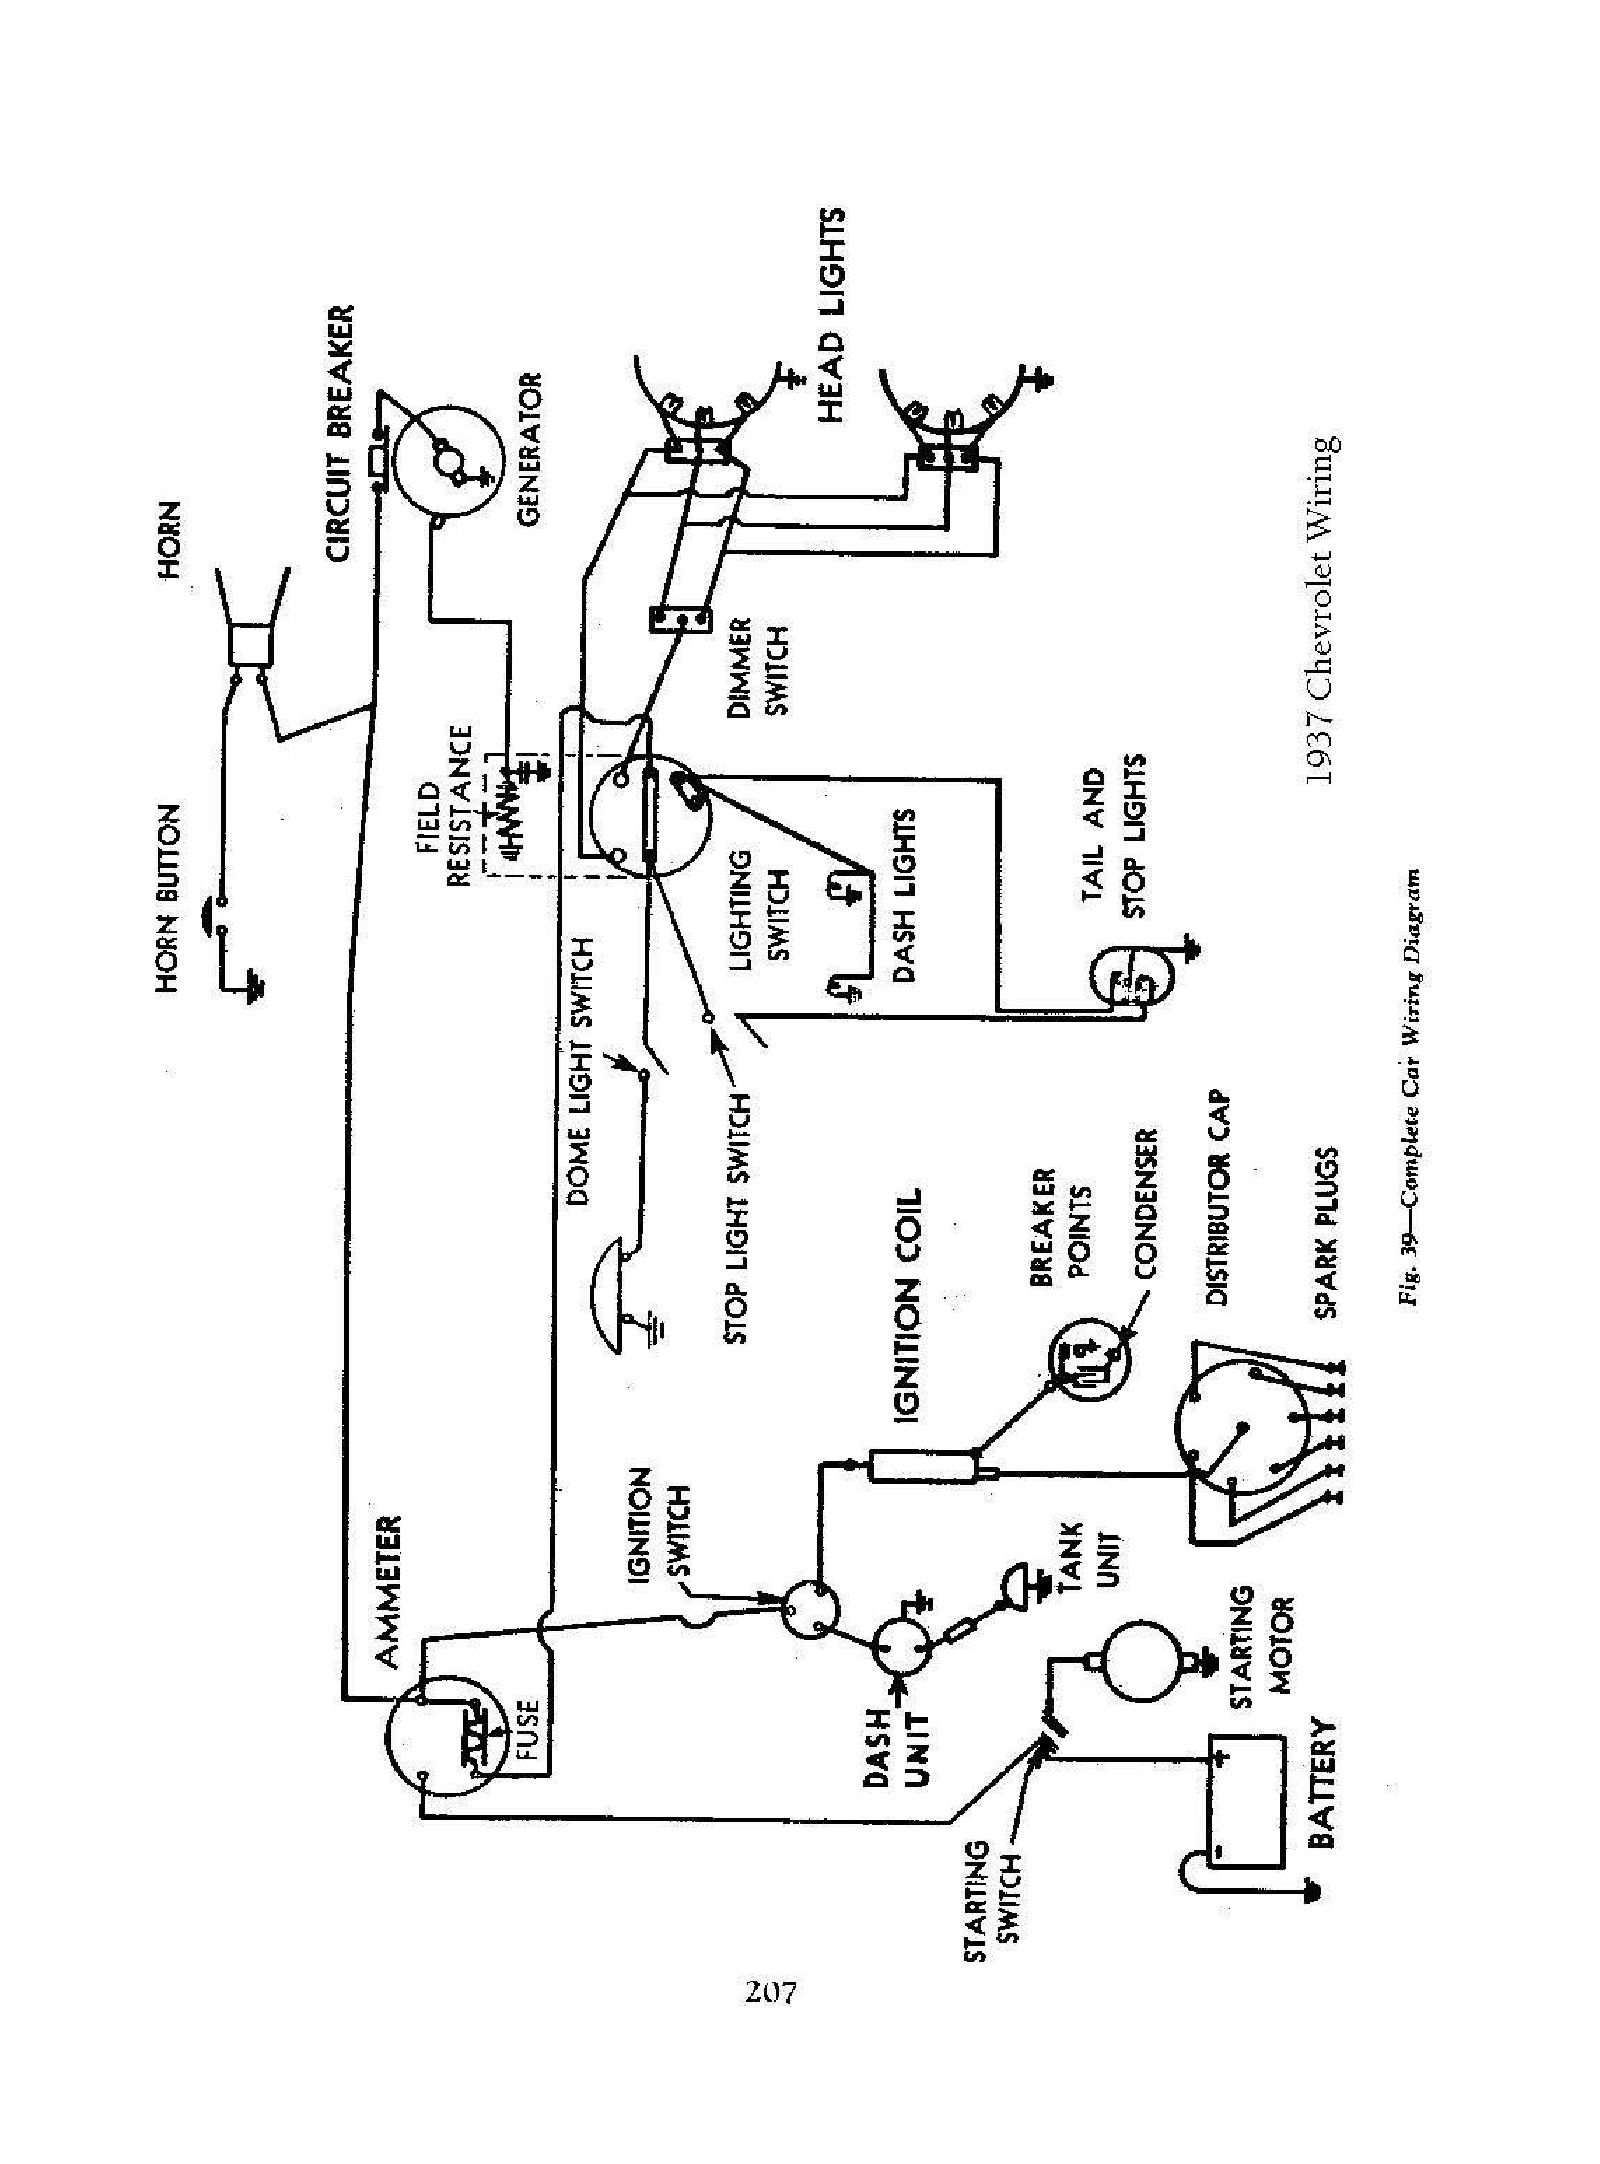 1950 willys jeepster wiring diagram  1950  free engine